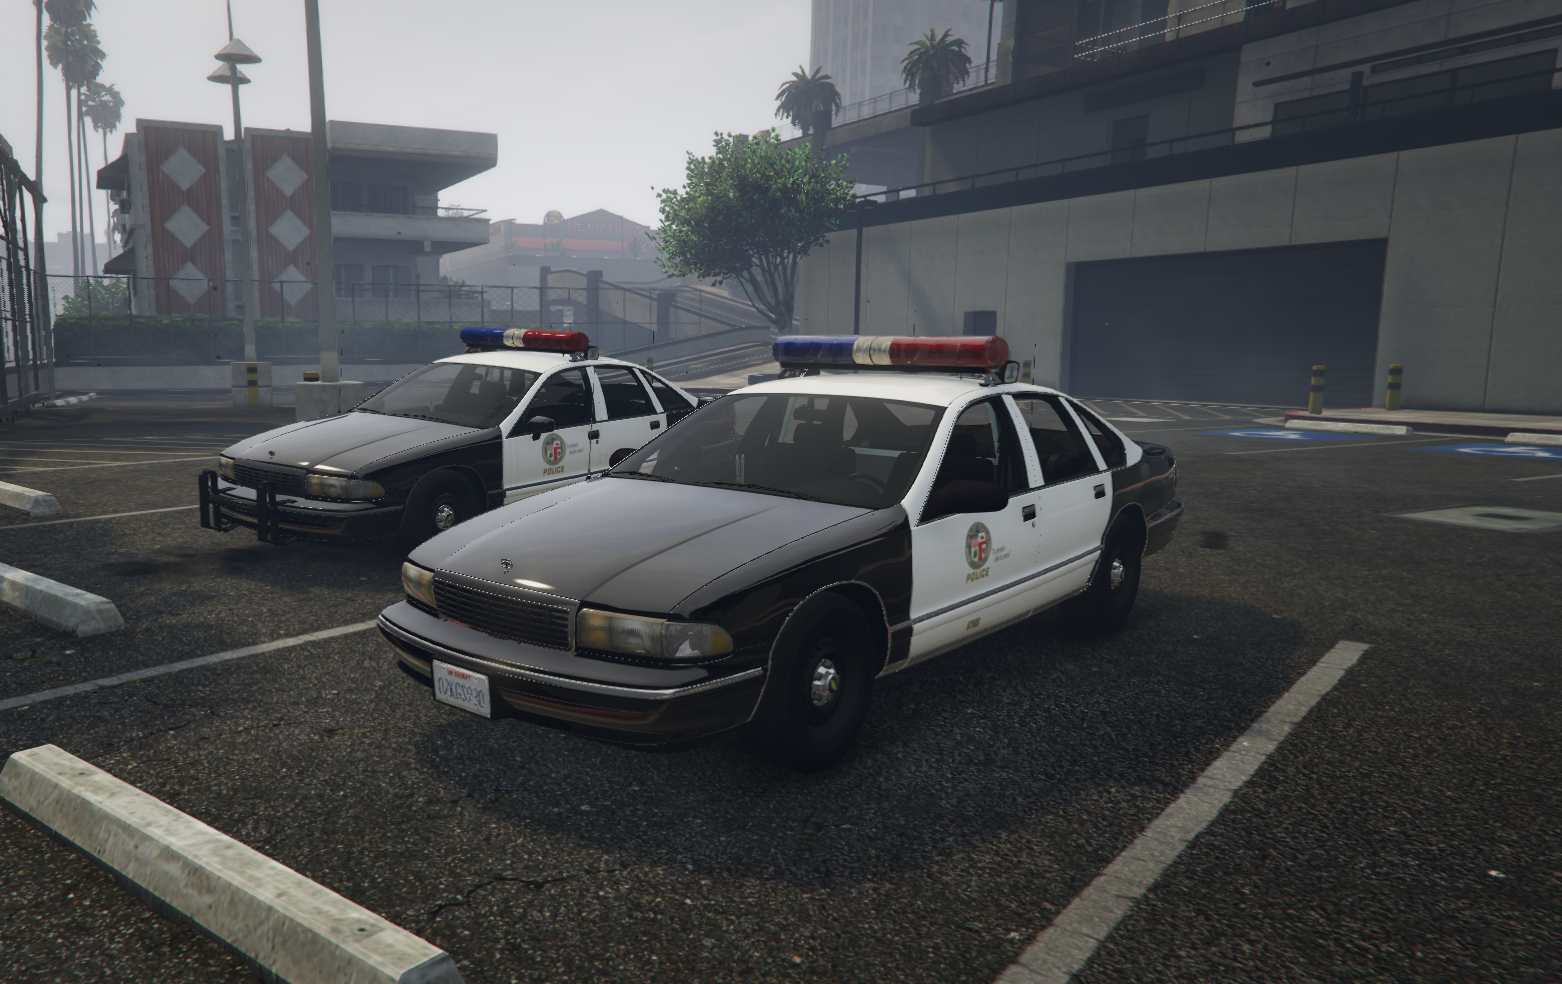 LSPD Caprices with LAPD Style Badges